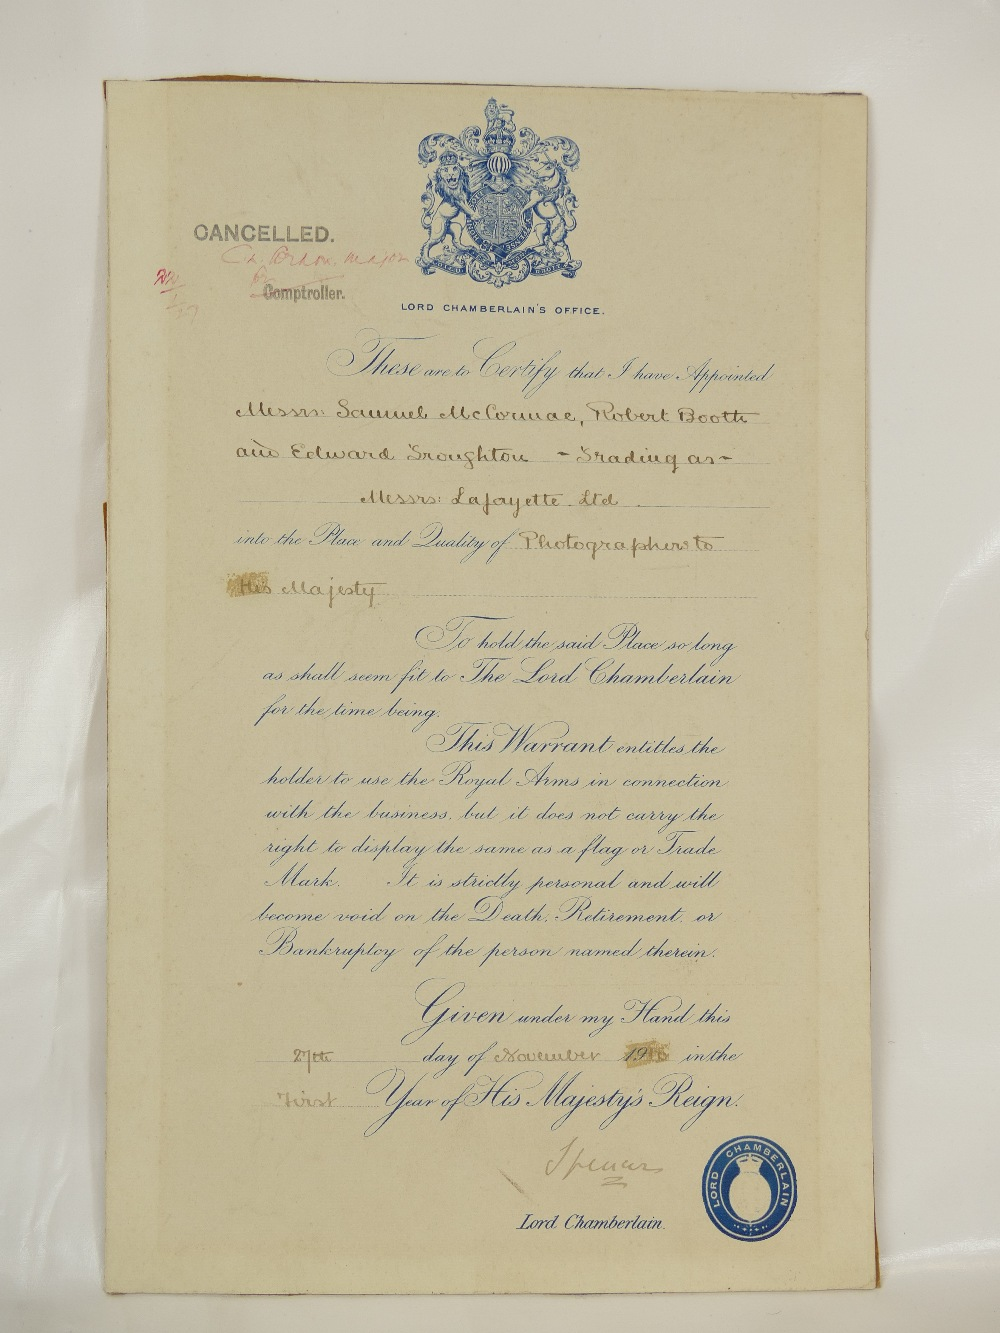 Lot 32 - Original and genuine Royal Warrant issued to the three named partners trading as LAFAYETTE Ltd.